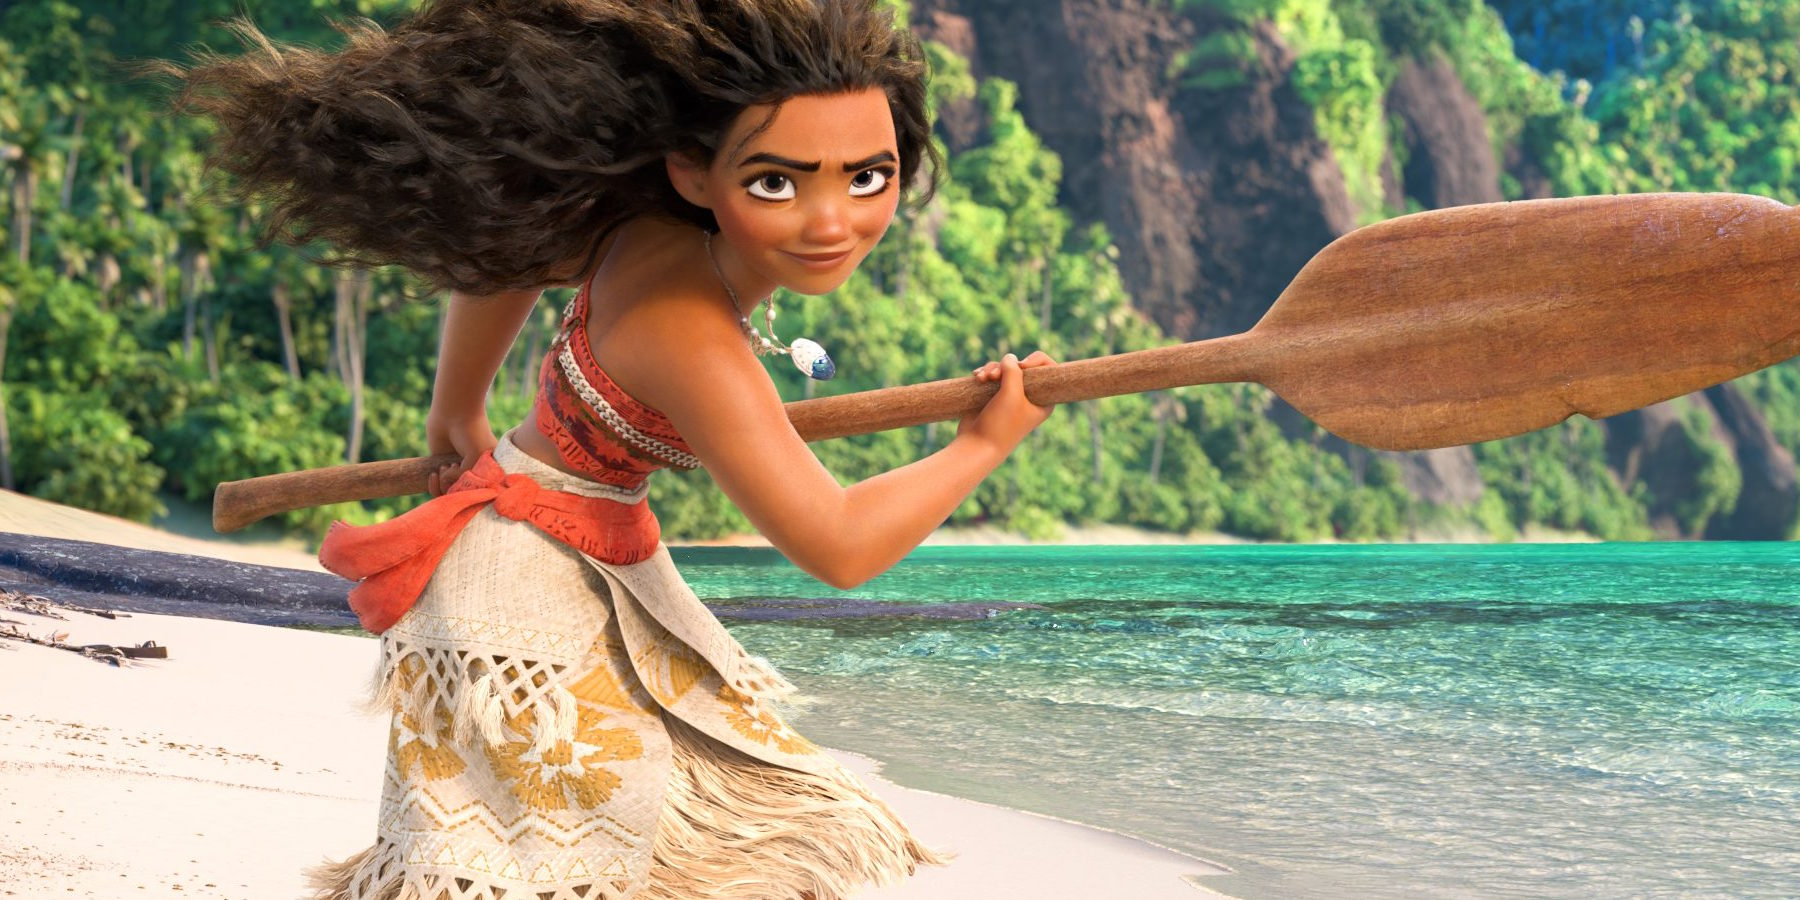 b40d8e081 On the younger end of the Disney princess spectrum, Moana isn't technically  a princess. Instead, she's the daughter of the chief of her people.